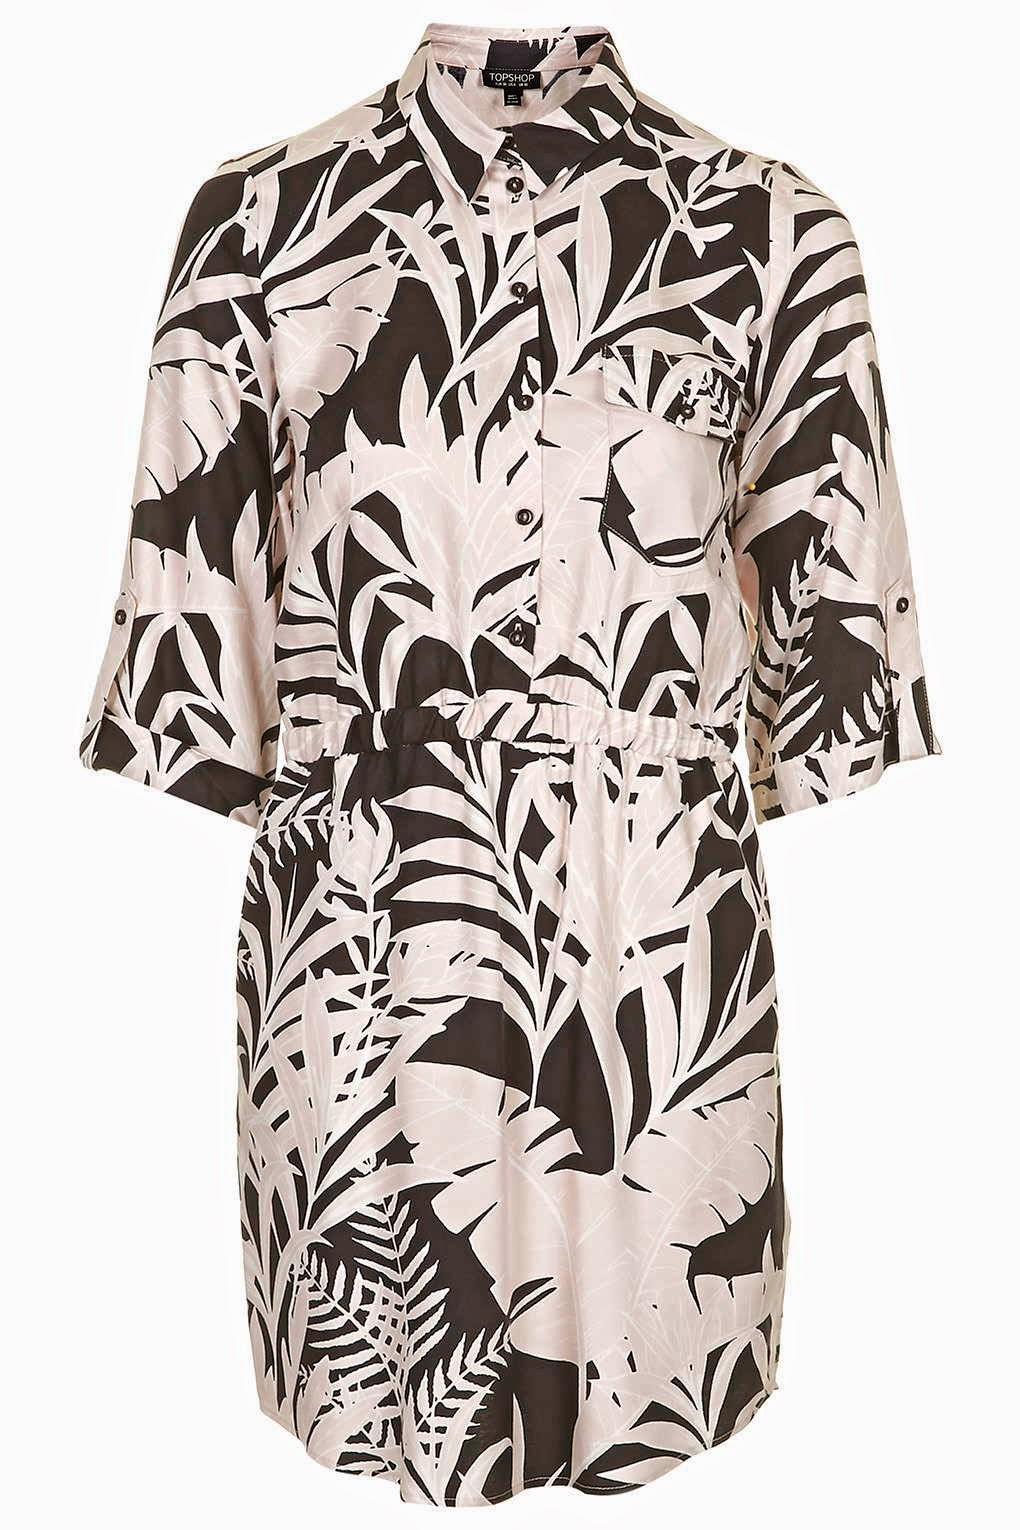 leaf print shirt dress, topshop leaf dress,